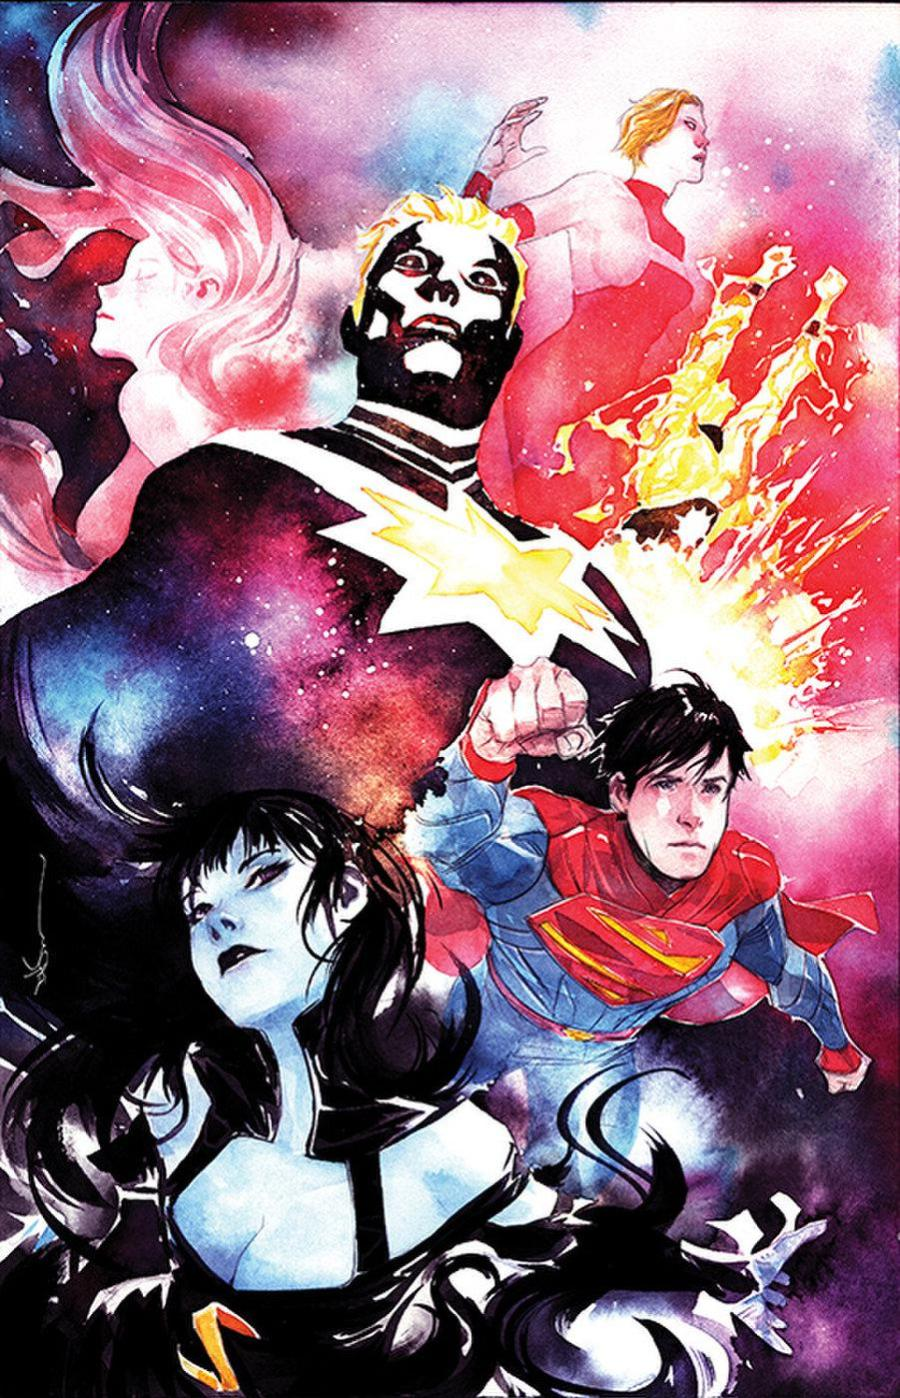 Cover] Legion of Super-Heroes #8 variant (by Dustin Nguyen) : DCcomics